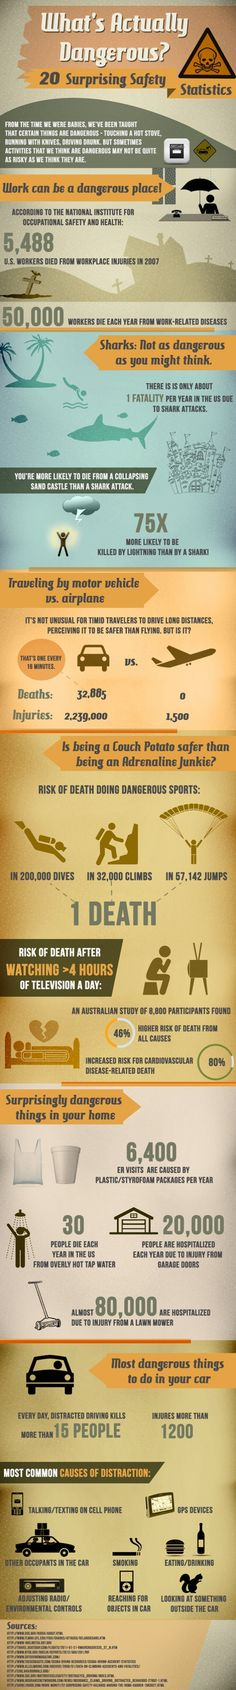 On this infographic, we are going to examine what the research really says on some safety statistics concerning on occupational health and safety. The truth behind from the activities we tend to believe that are dangerous which in fact may not be quite as risky as we predict they are. # We Educate Travellers for More Productive, Efficient and Safer Travel! http://intelligenttravel.com.au/